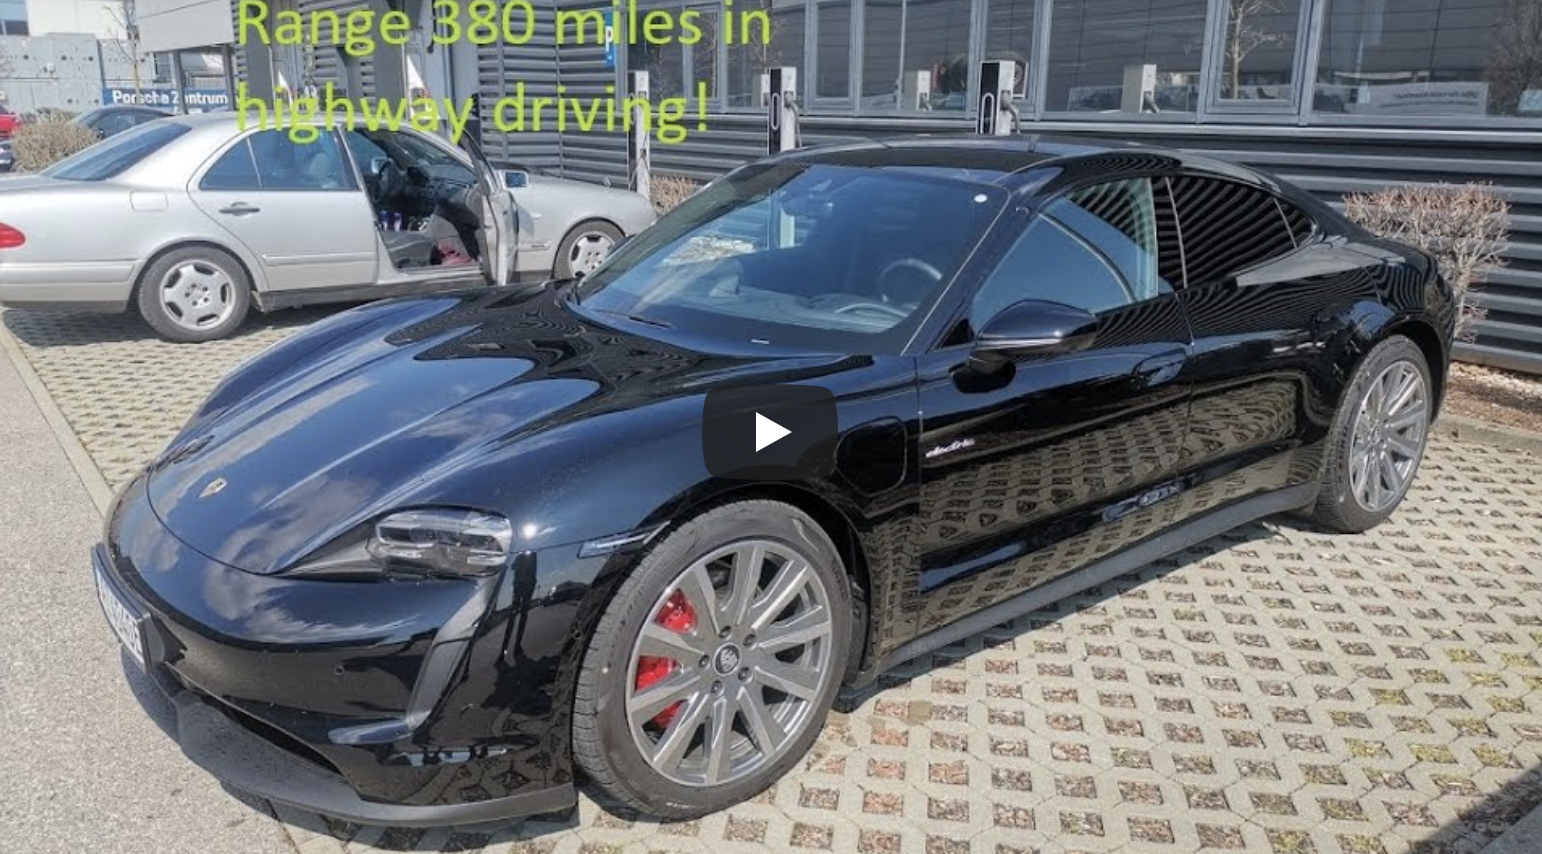 2020 Taycan 4s Range Test Results In 381 Miles 610 Km Single Charge Non Stop Driving Porsche Taycan Forum Taycanforum Com